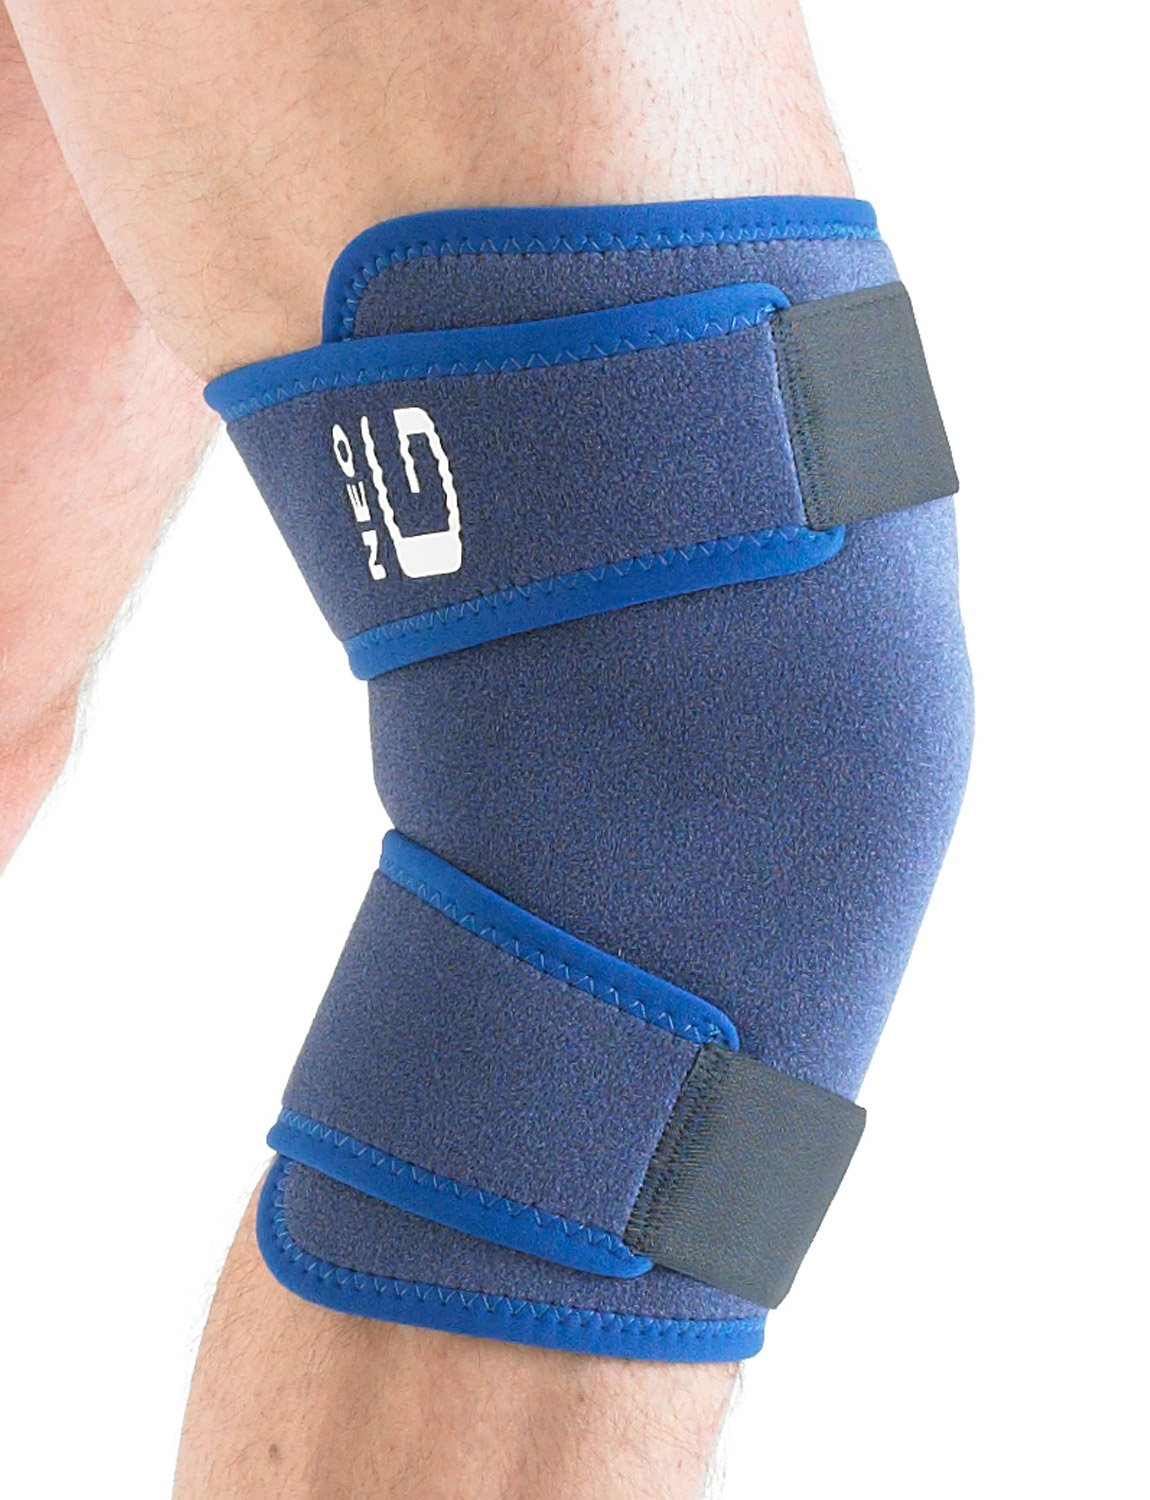 Neo G Closed Knee Brace - Support For Arthritis, Joint Pain, Meniscus Pain, Knee Injuries, Recovery, Rehabilitation - Adjustable Compression - Class 1 Medical Device - One Size - Blue